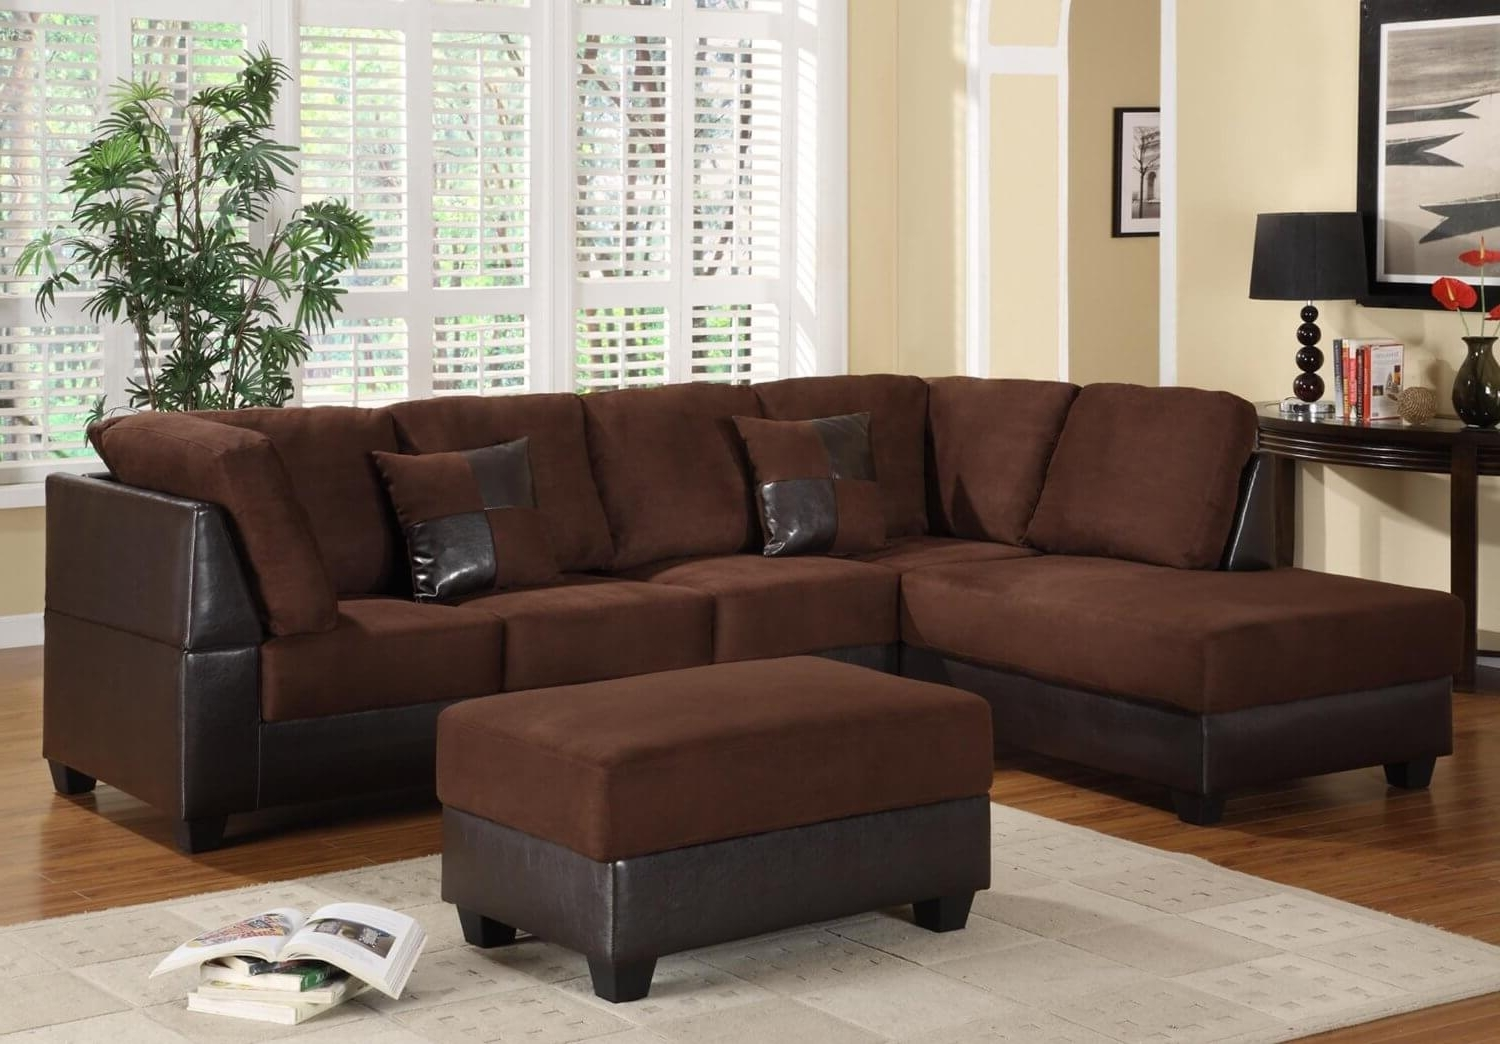 Most Popular Sectional Sofas Under 600 With 40 Cheap Sectional Sofas Under $500 For  (View 8 of 15)